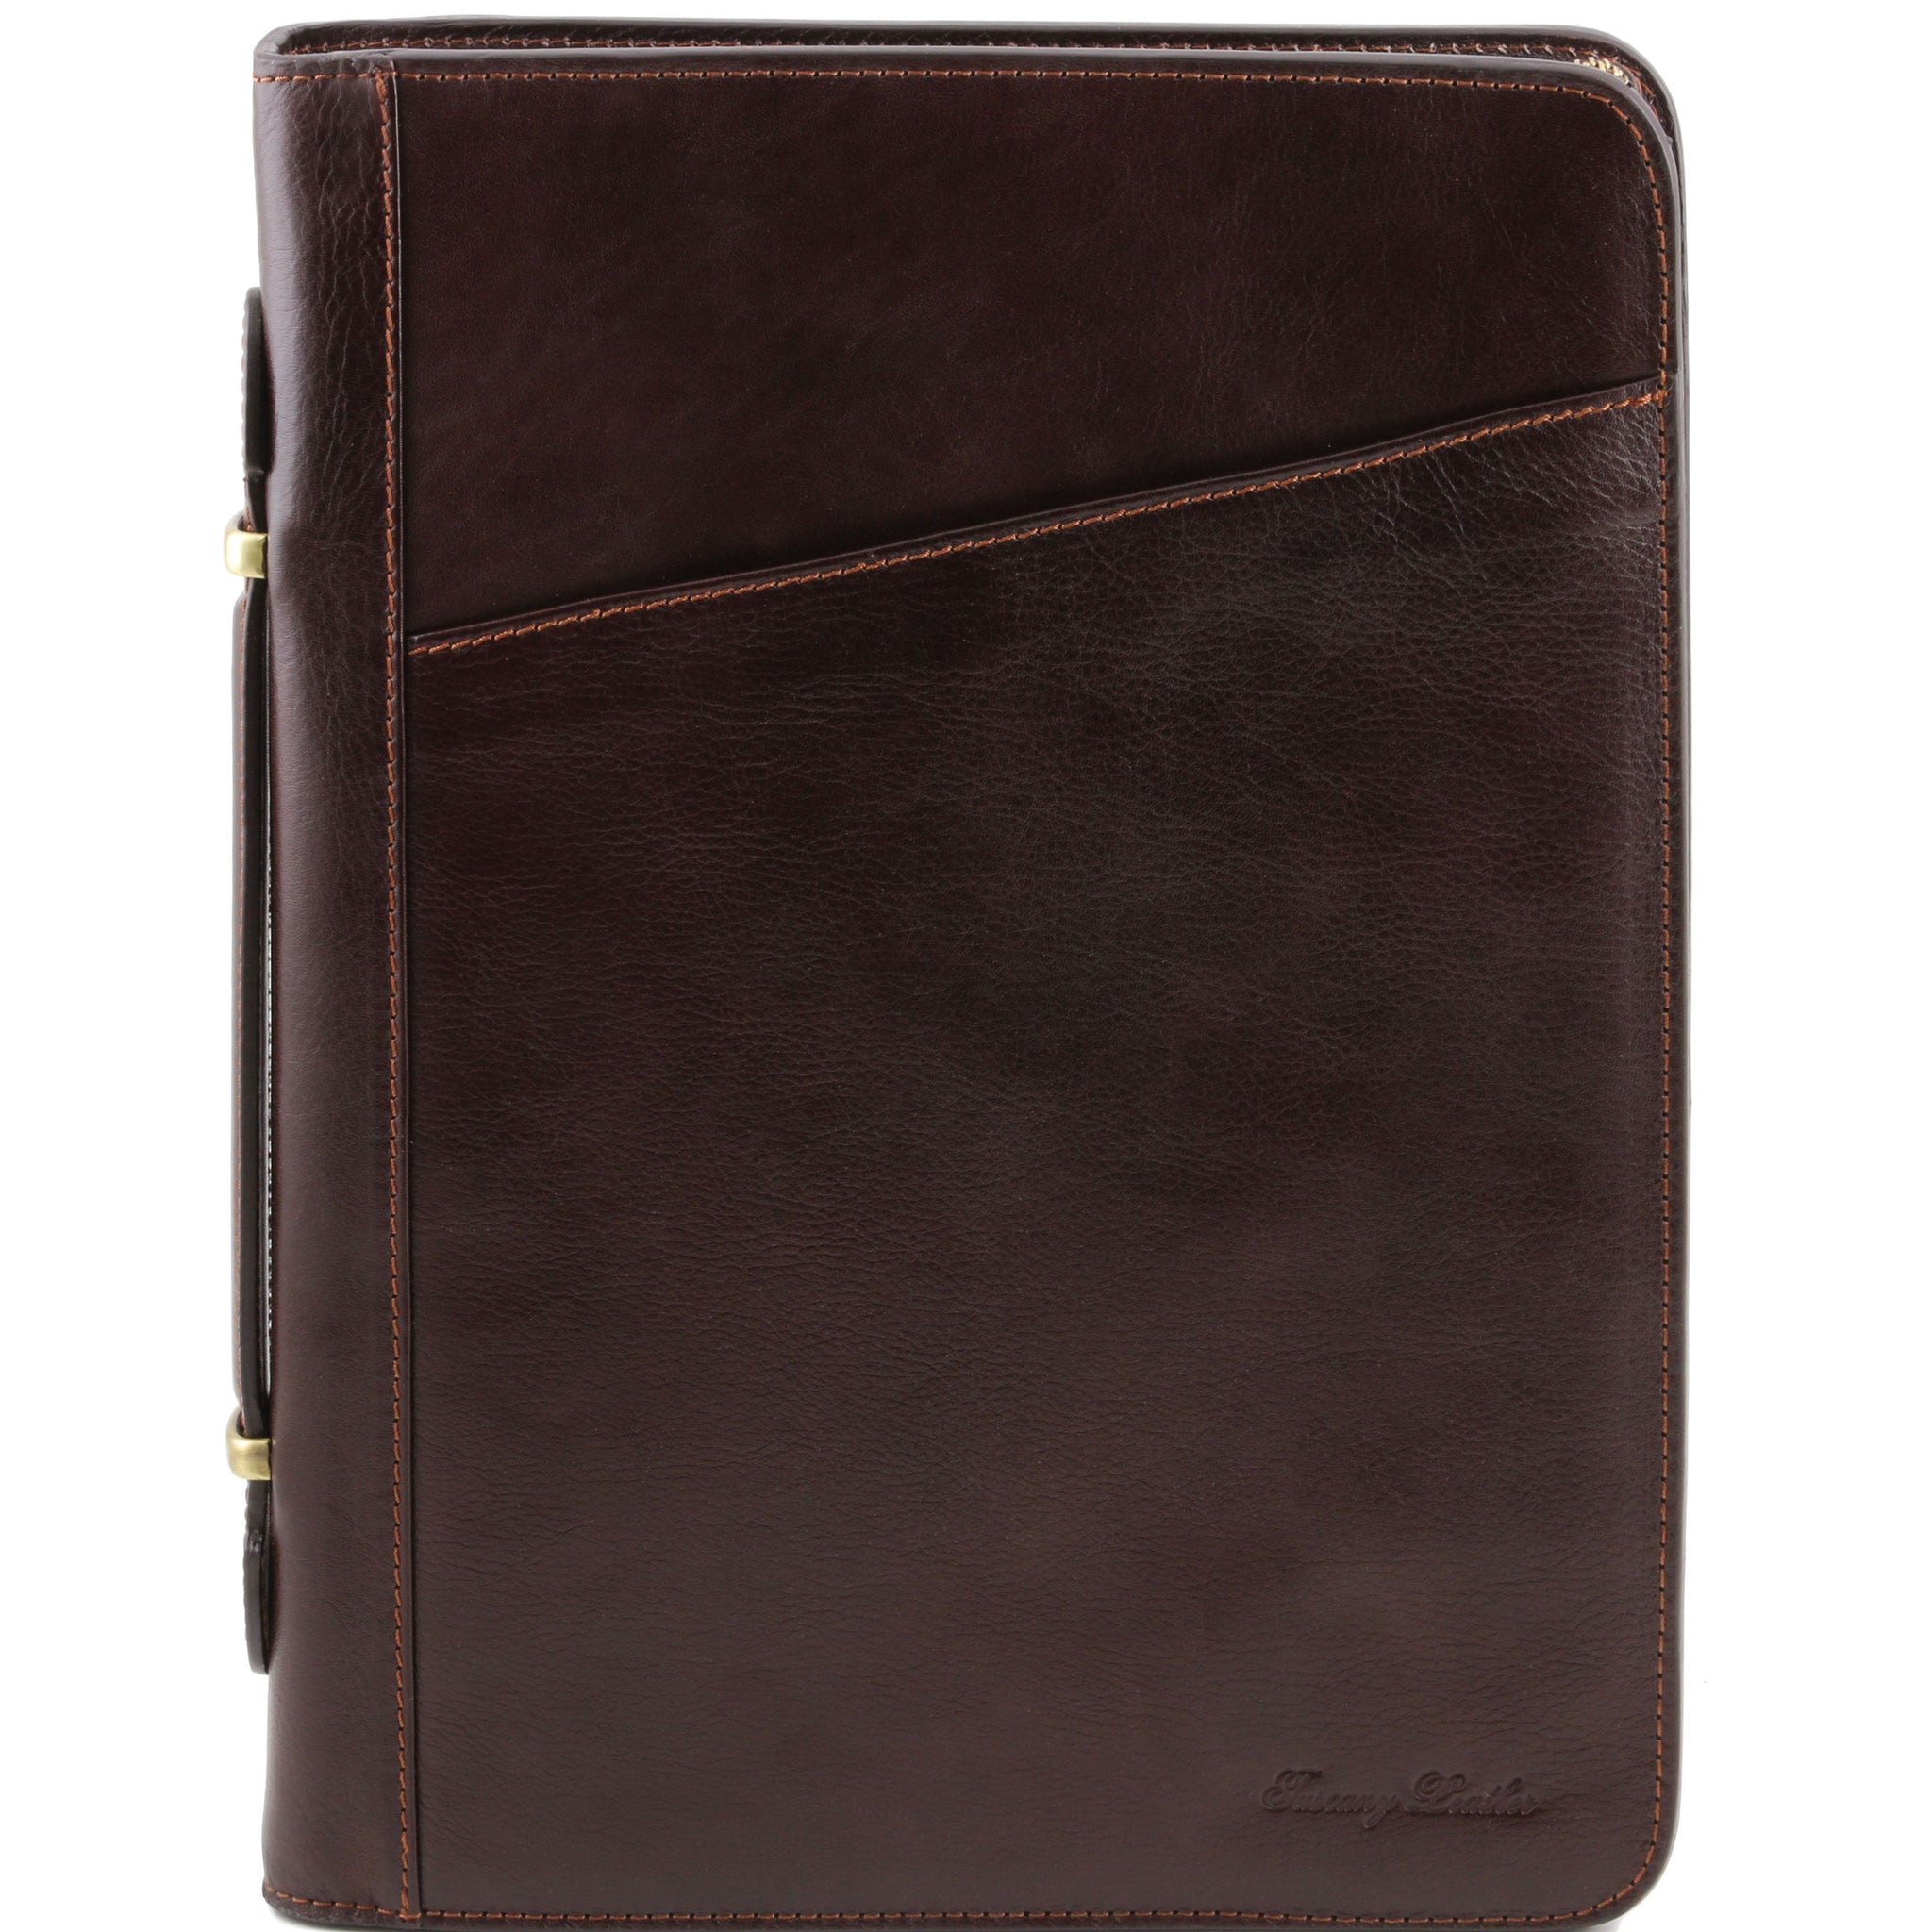 Tuscany Leather 1st Class 'Claudio' Exclusive Leather Portfolio Document Case With Handle Leather Document/Portfolio Case Tuscany Leather Dark Brown